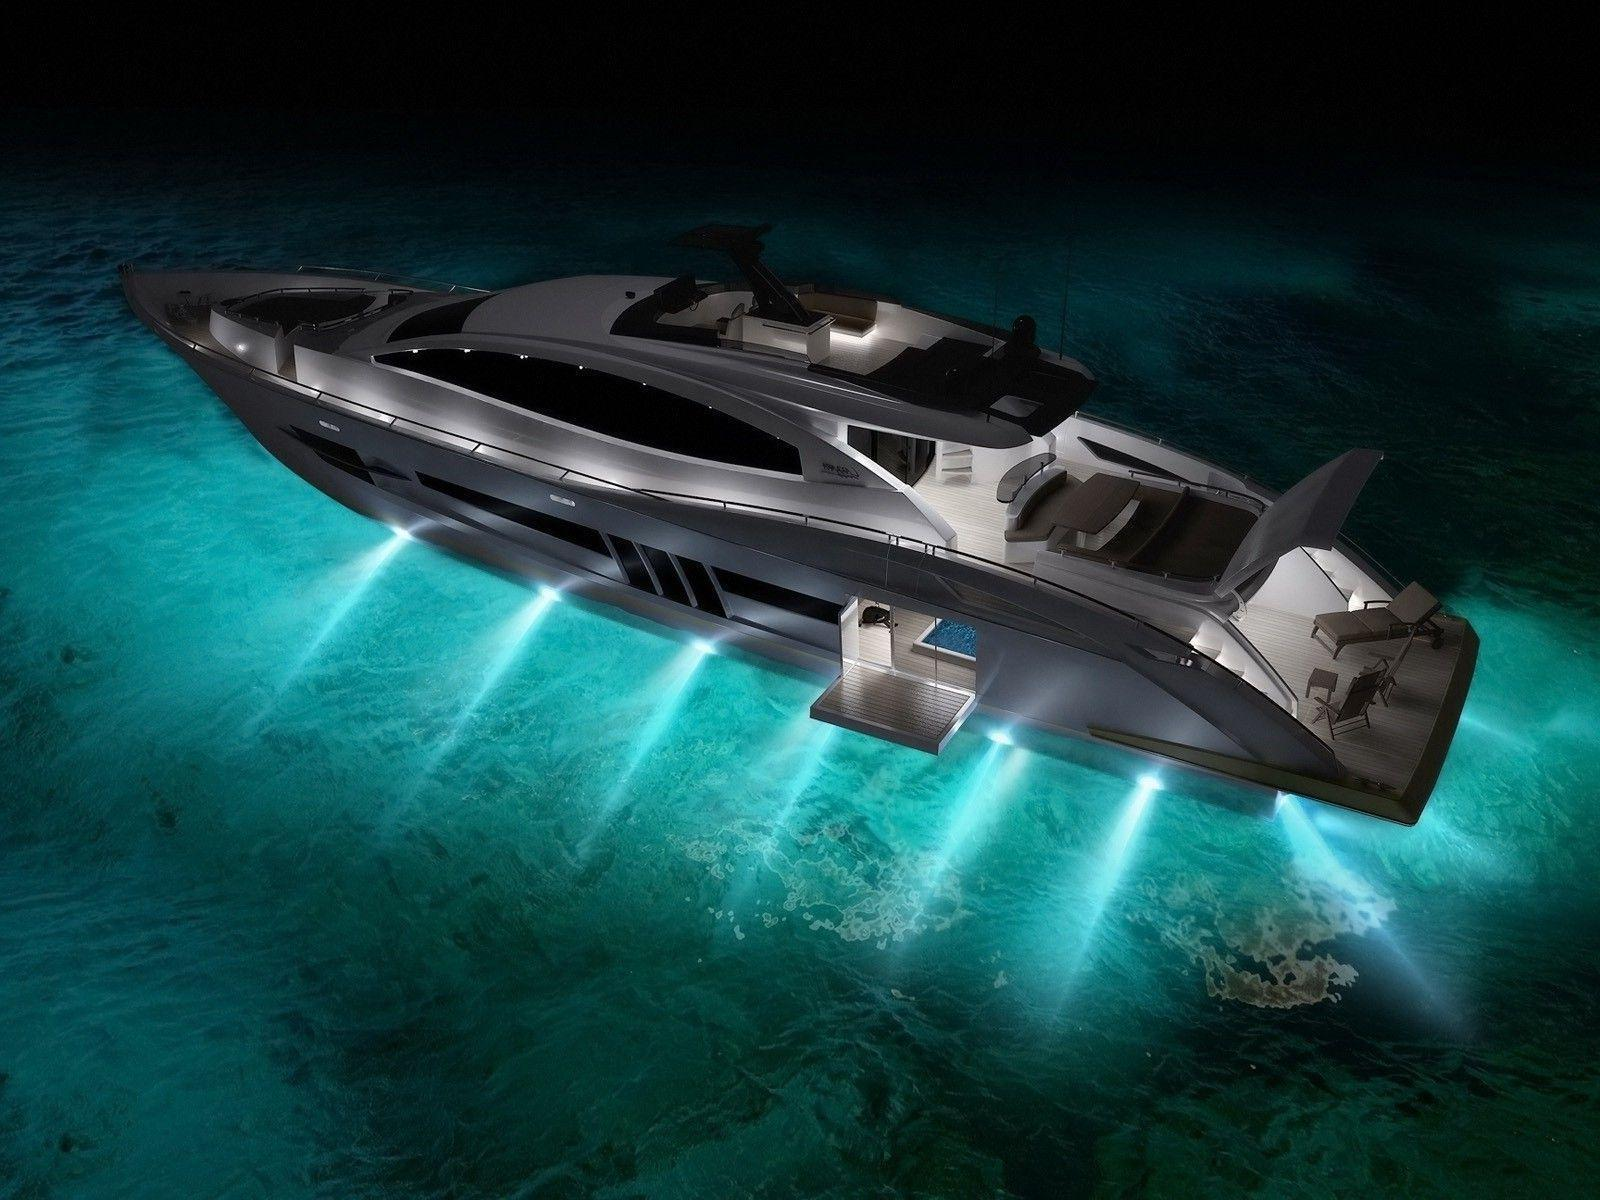 yachts, 3D Wallpapers HD / Desktop and Mobile Backgrounds